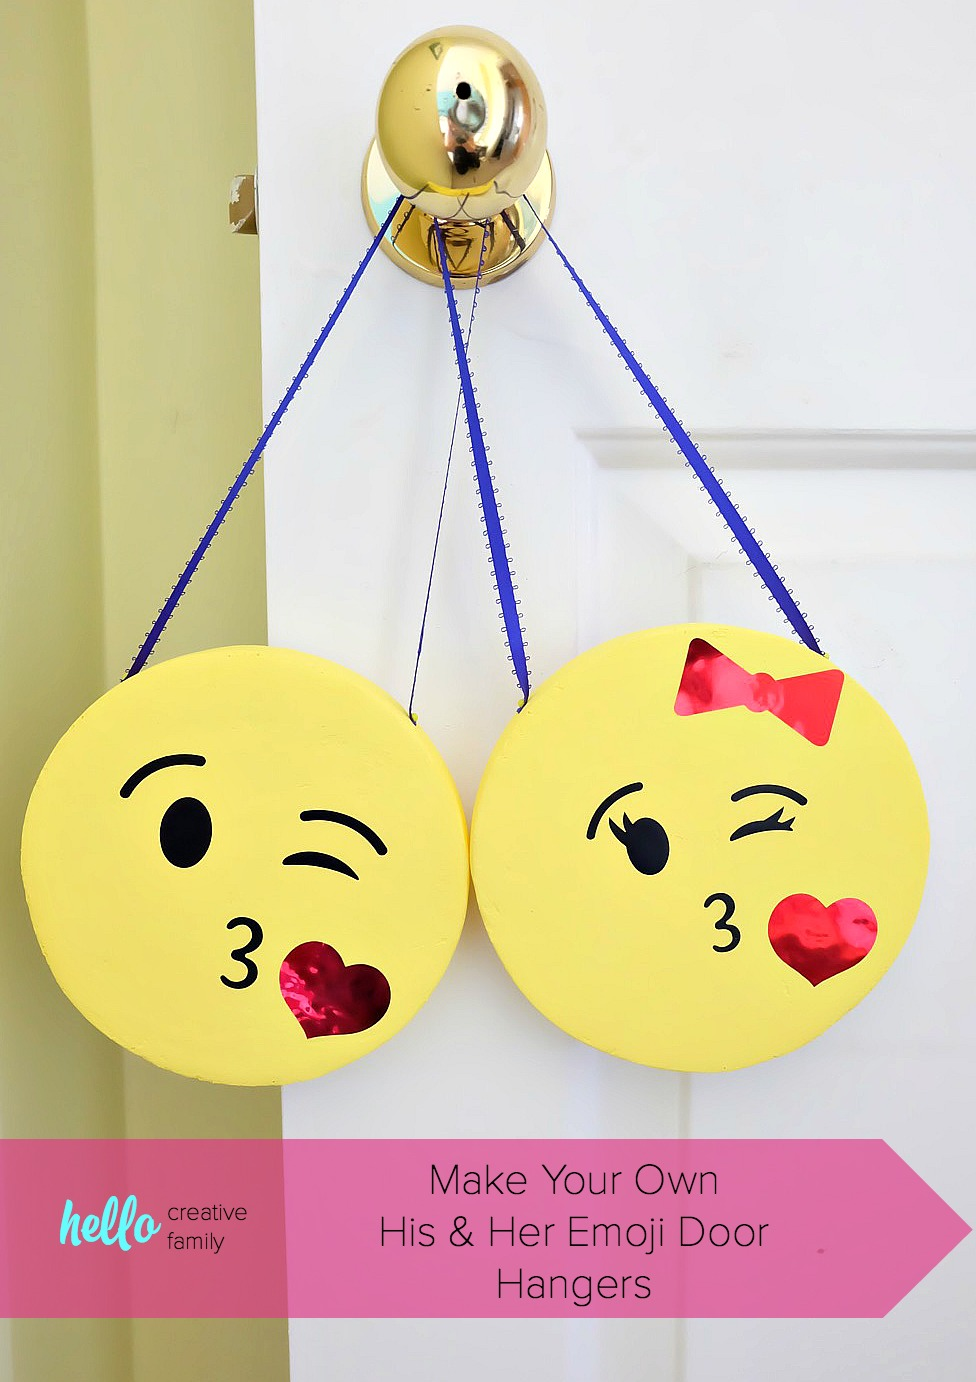 There are a few projects in here that may even inspire you, too. His And Her Diy Emoji Door Hangers Hello Creative Family